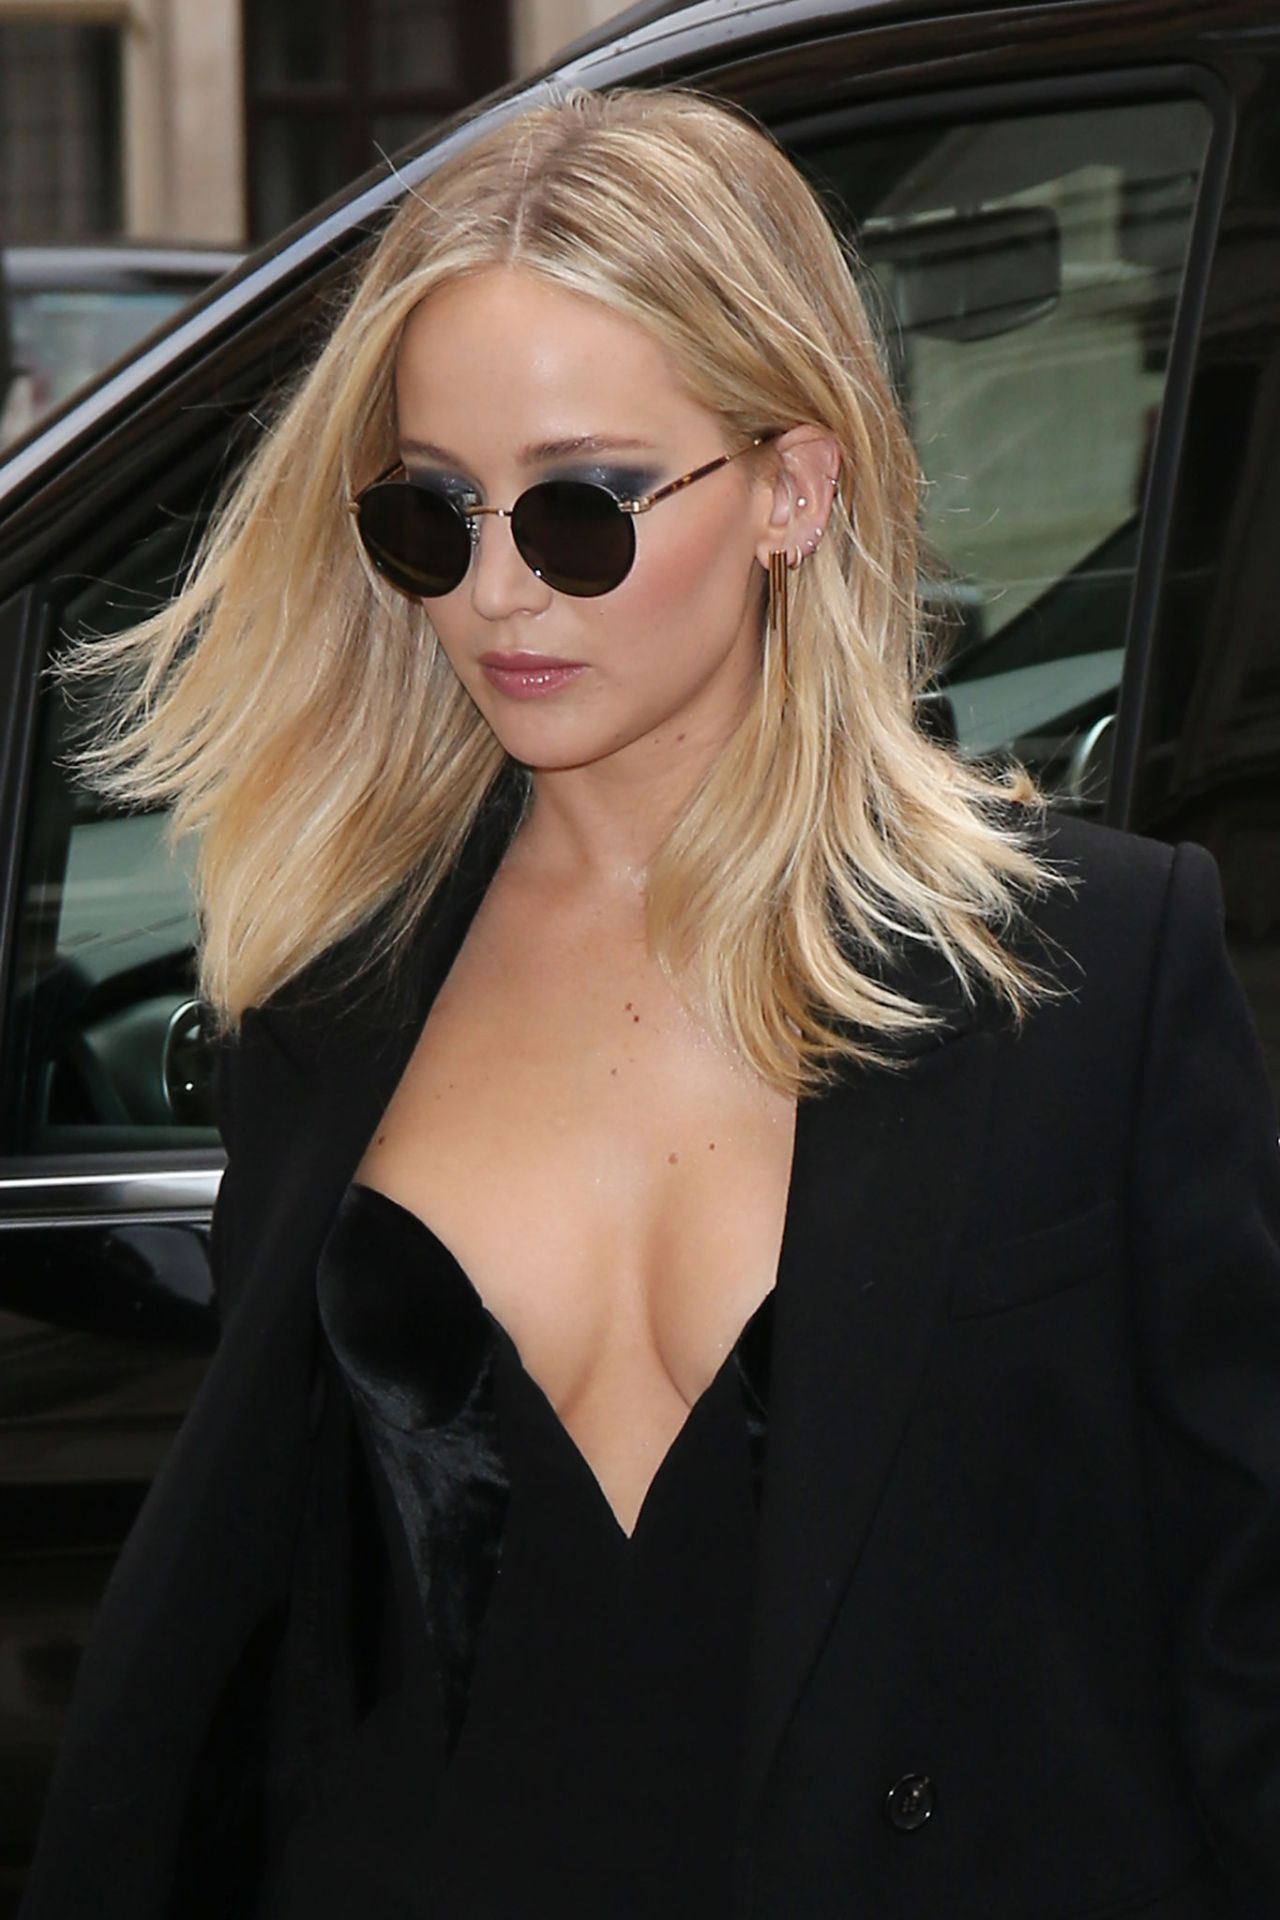 Jennifer Lawrence Style London 02 20 2018